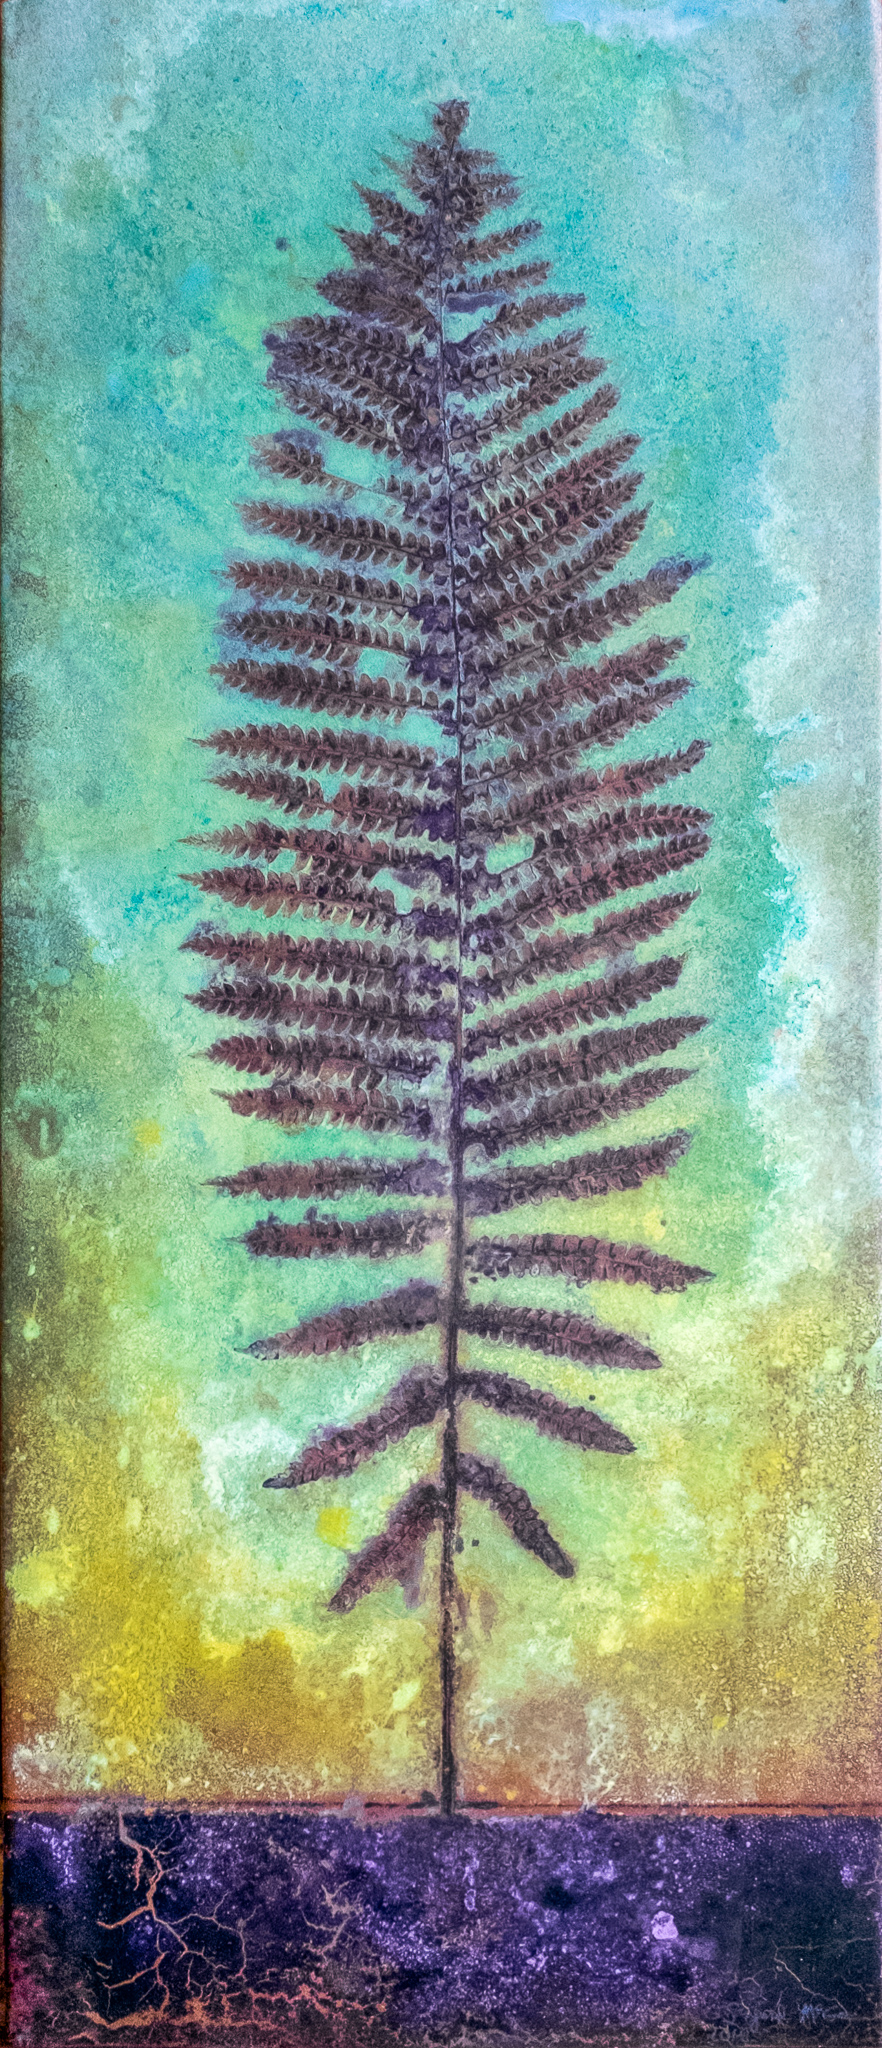 sanford-mcgee-copper-art-tennessee-tall-fern.jpg